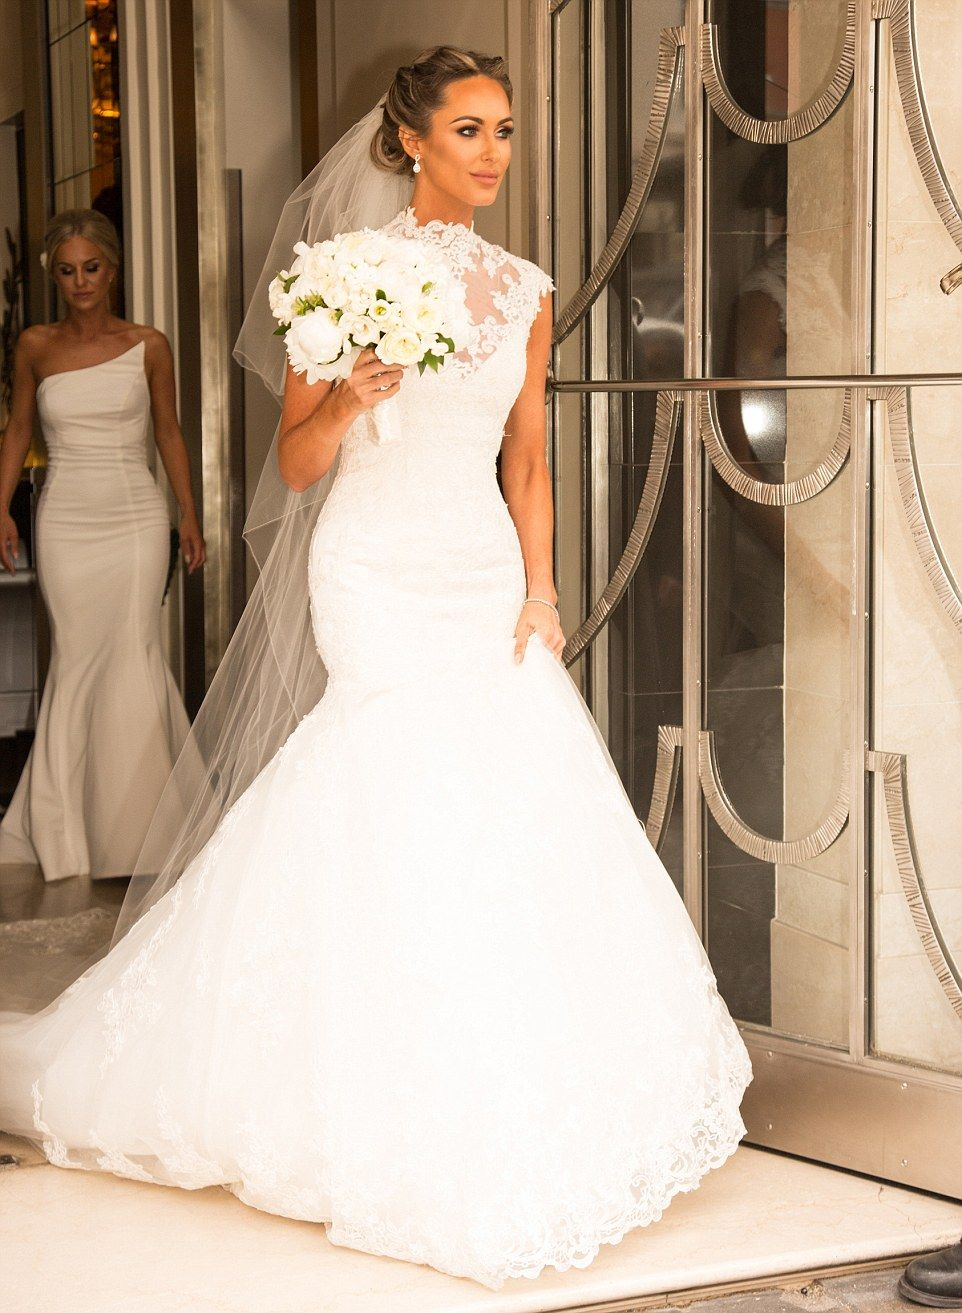 fishtail wedding dress Elegant Wearing an ivory fishtail dress with a high necked lace detail Miss